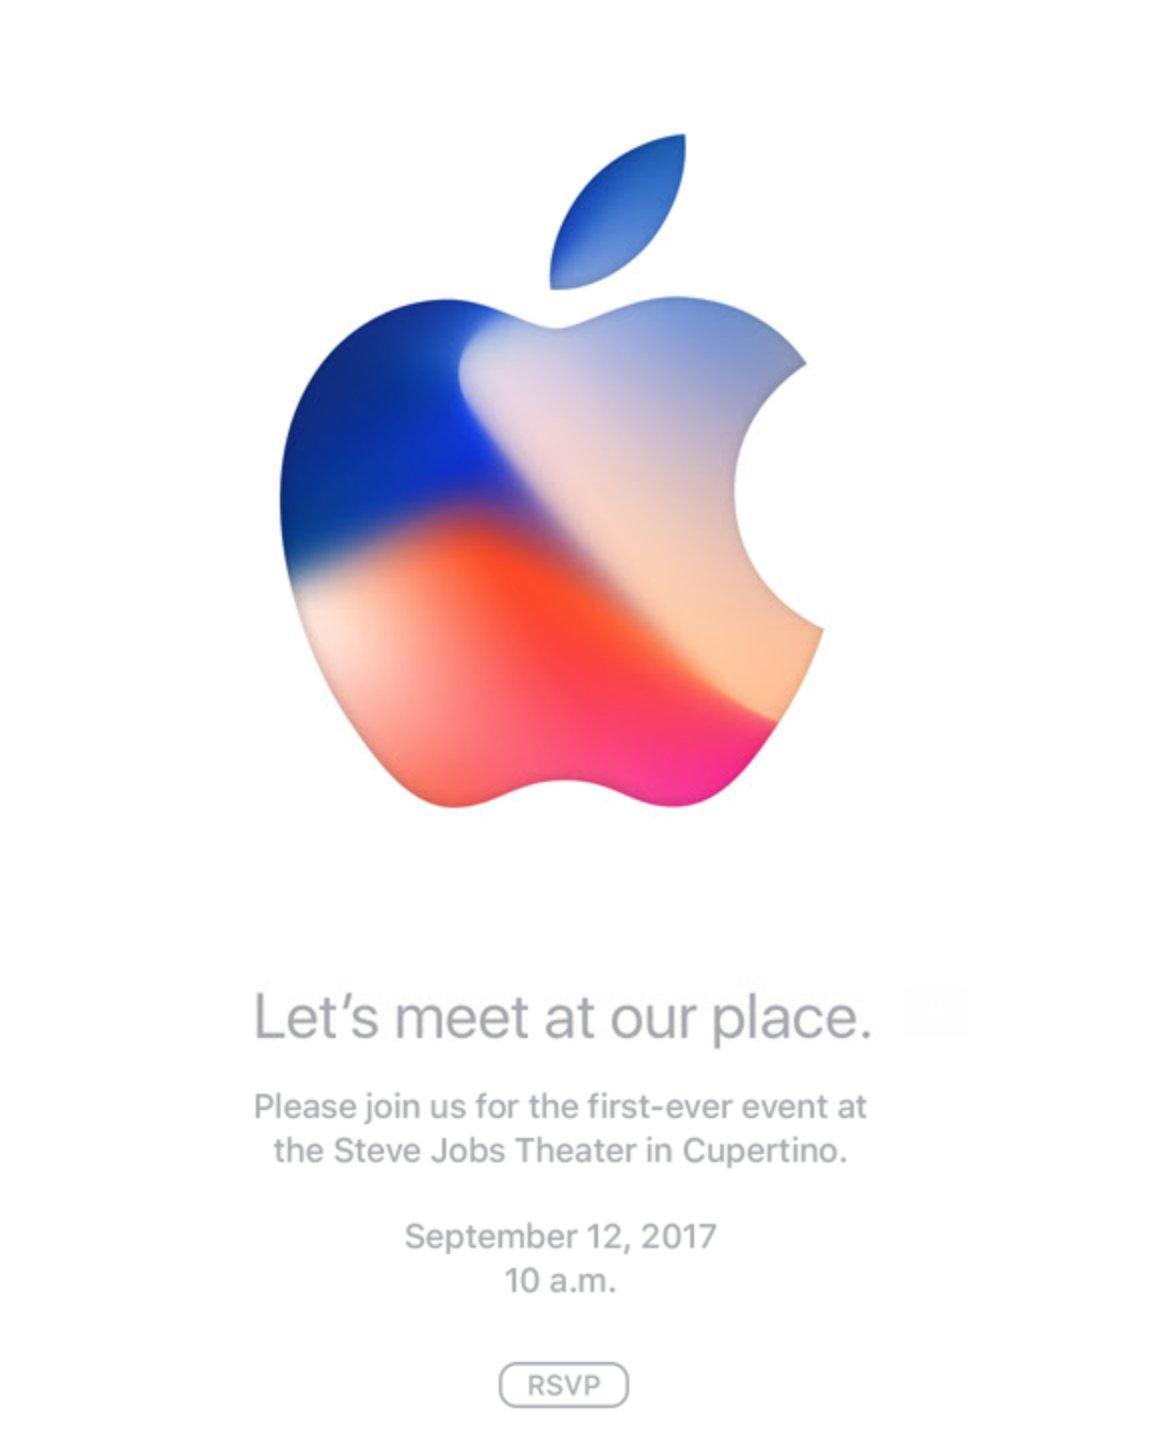 See you September 12, iPhone 8!